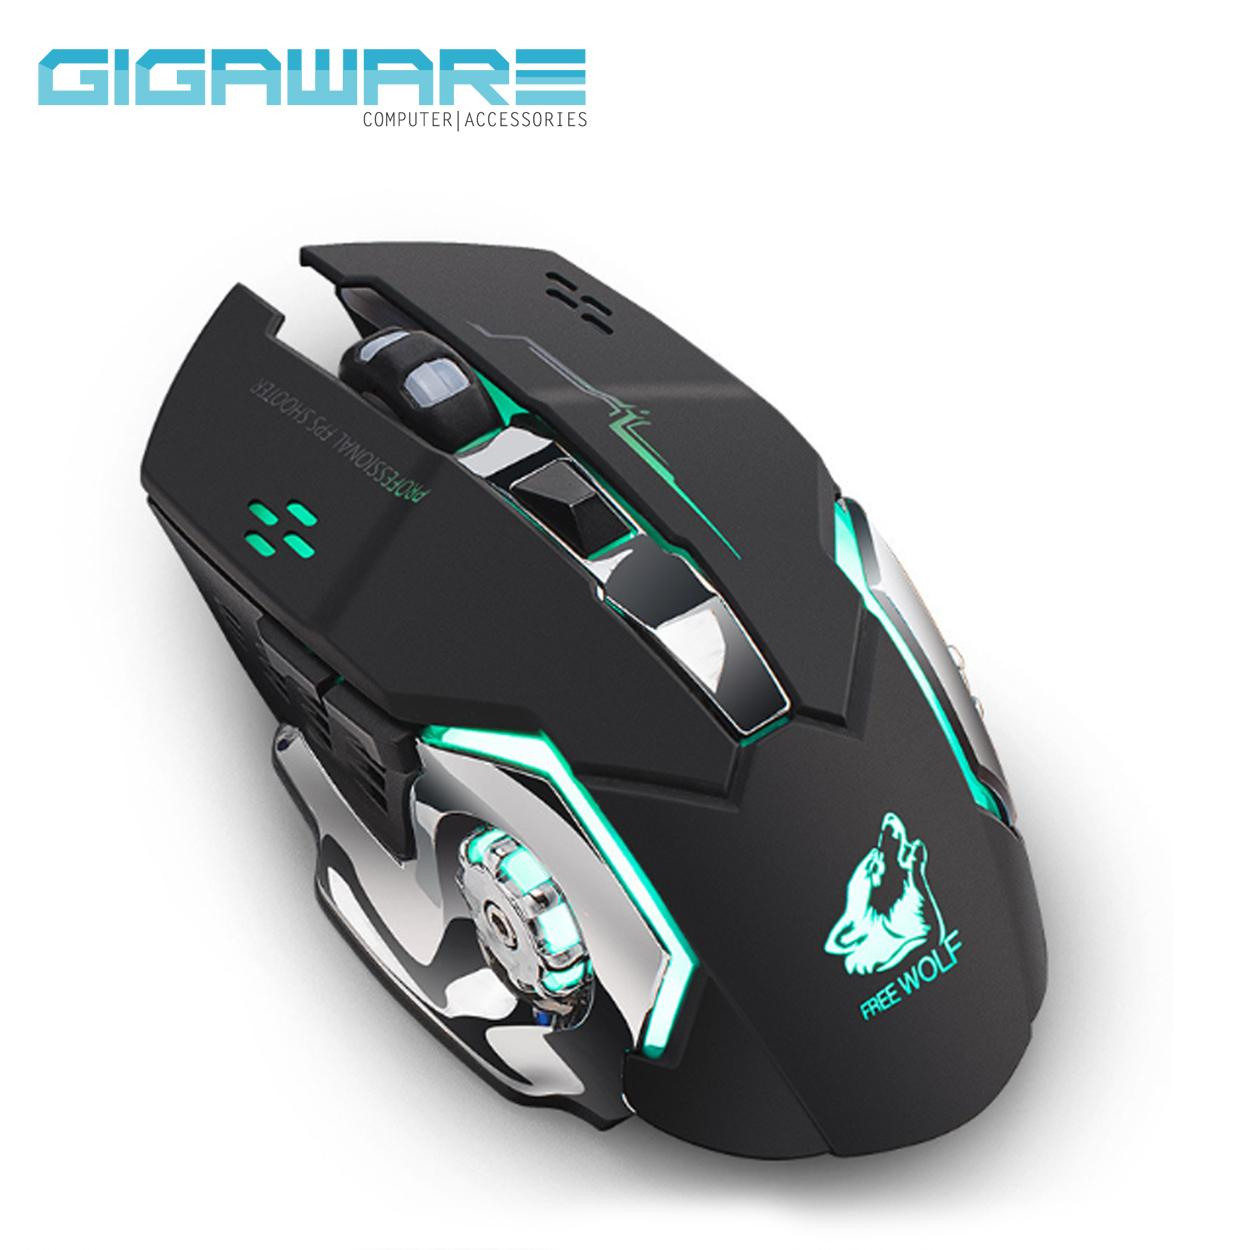 Computer Mouse For Sale Pc Mice Prices Brands Specs In Motion Sensor And Bluetooth Circuit Board Spare Parts Accessories Gigaware Wolf X8 6 Buttons Rgb Back Light Wireless Charging Gaming Black